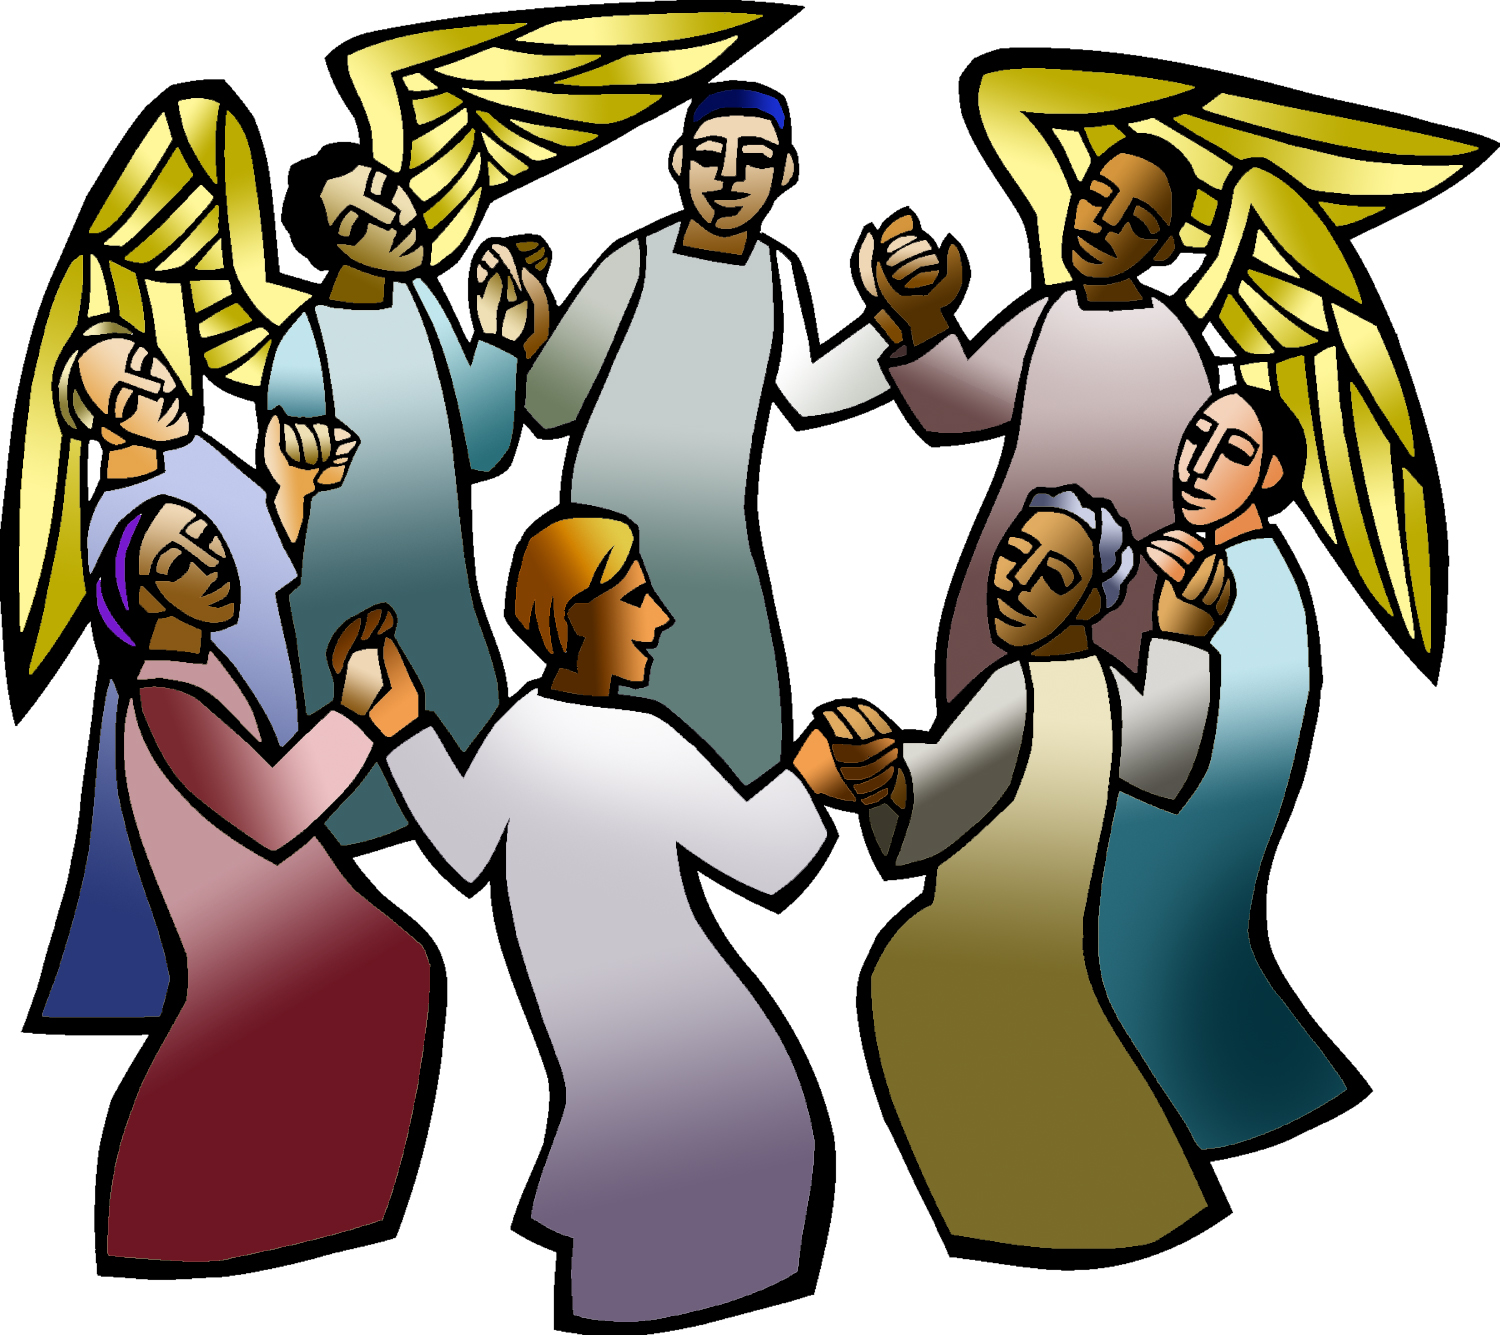 question of the day tuesday november 1 all saints day zion rh zionlutheran marinette org all saints day 2014 clip art all saints day 2015 clipart